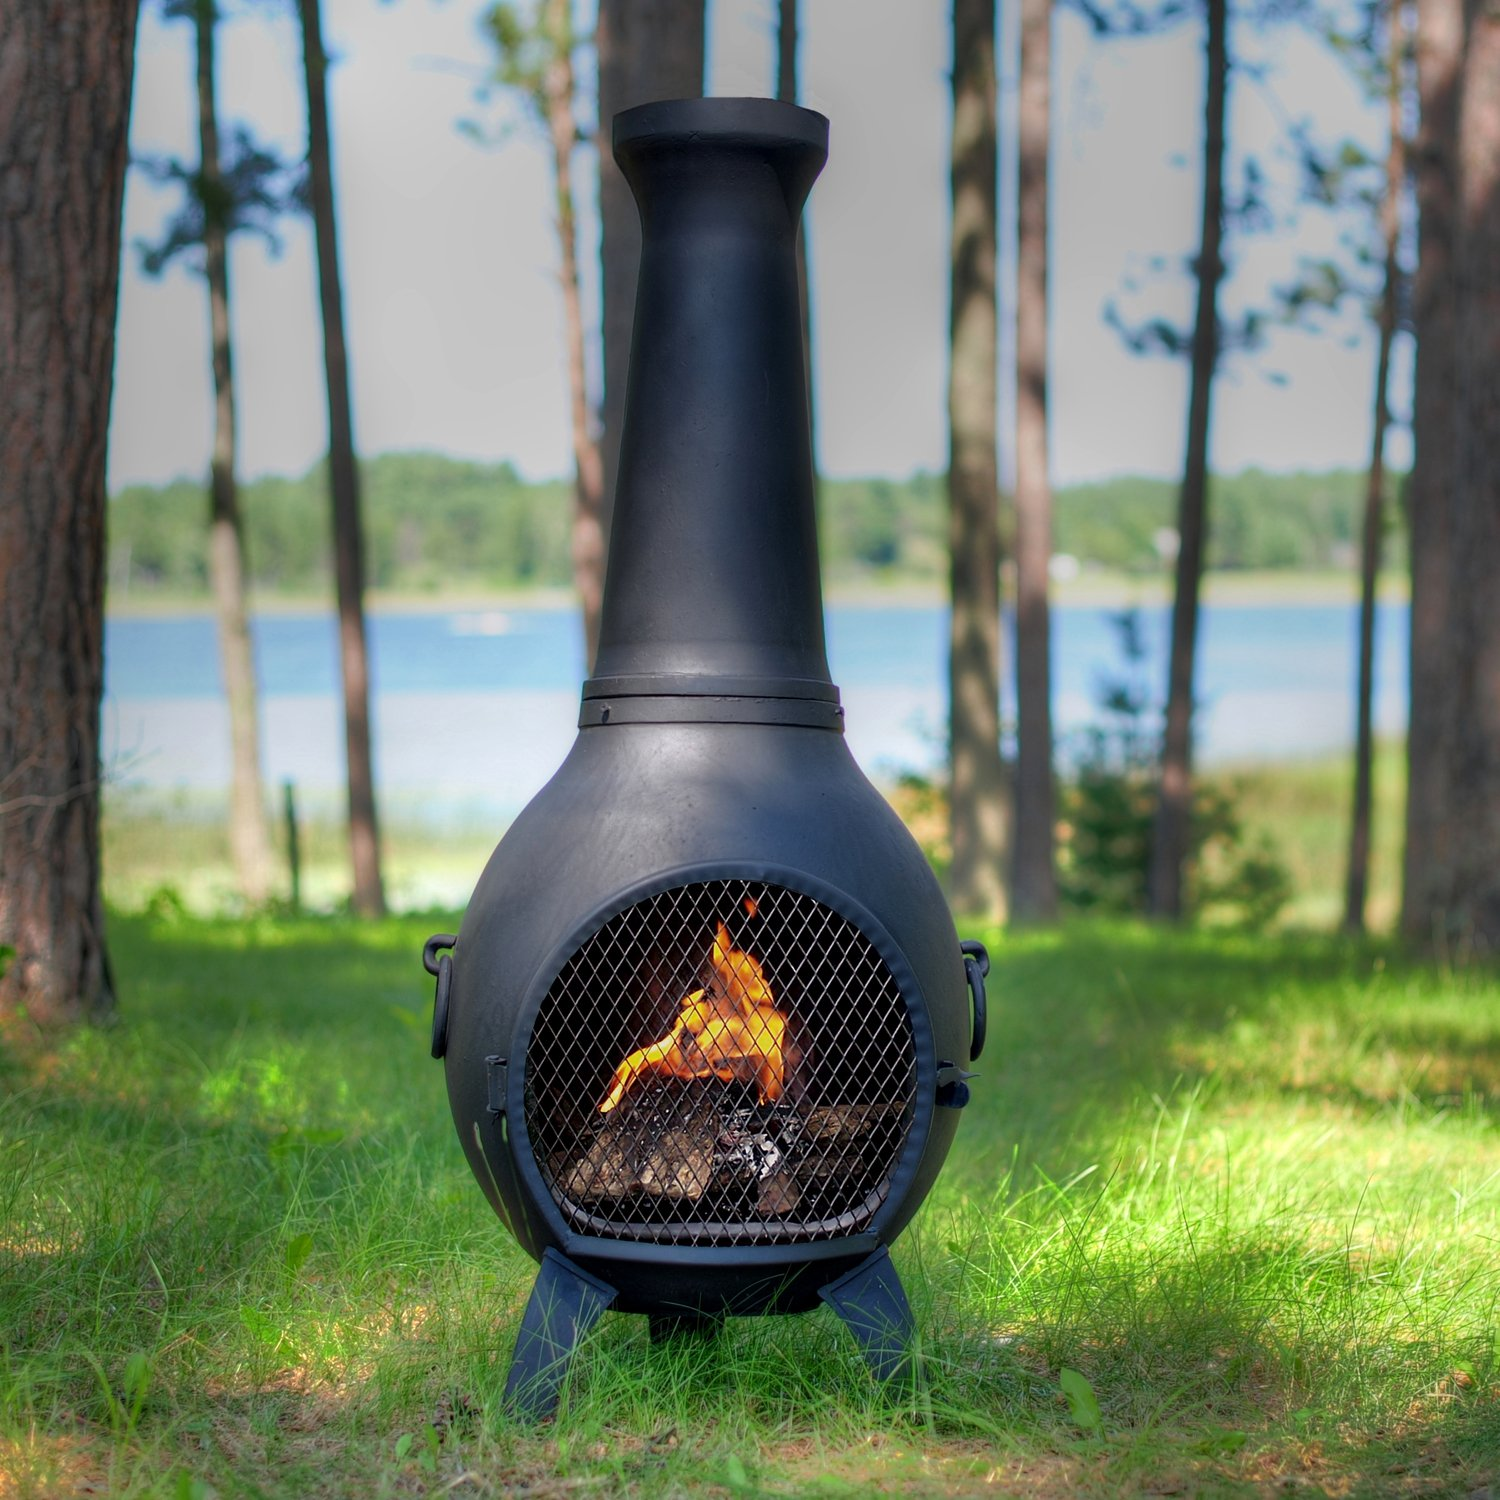 Online shopping for Chimineas - Fire Pits & Outdoor Fireplaces from a great selection at Patio